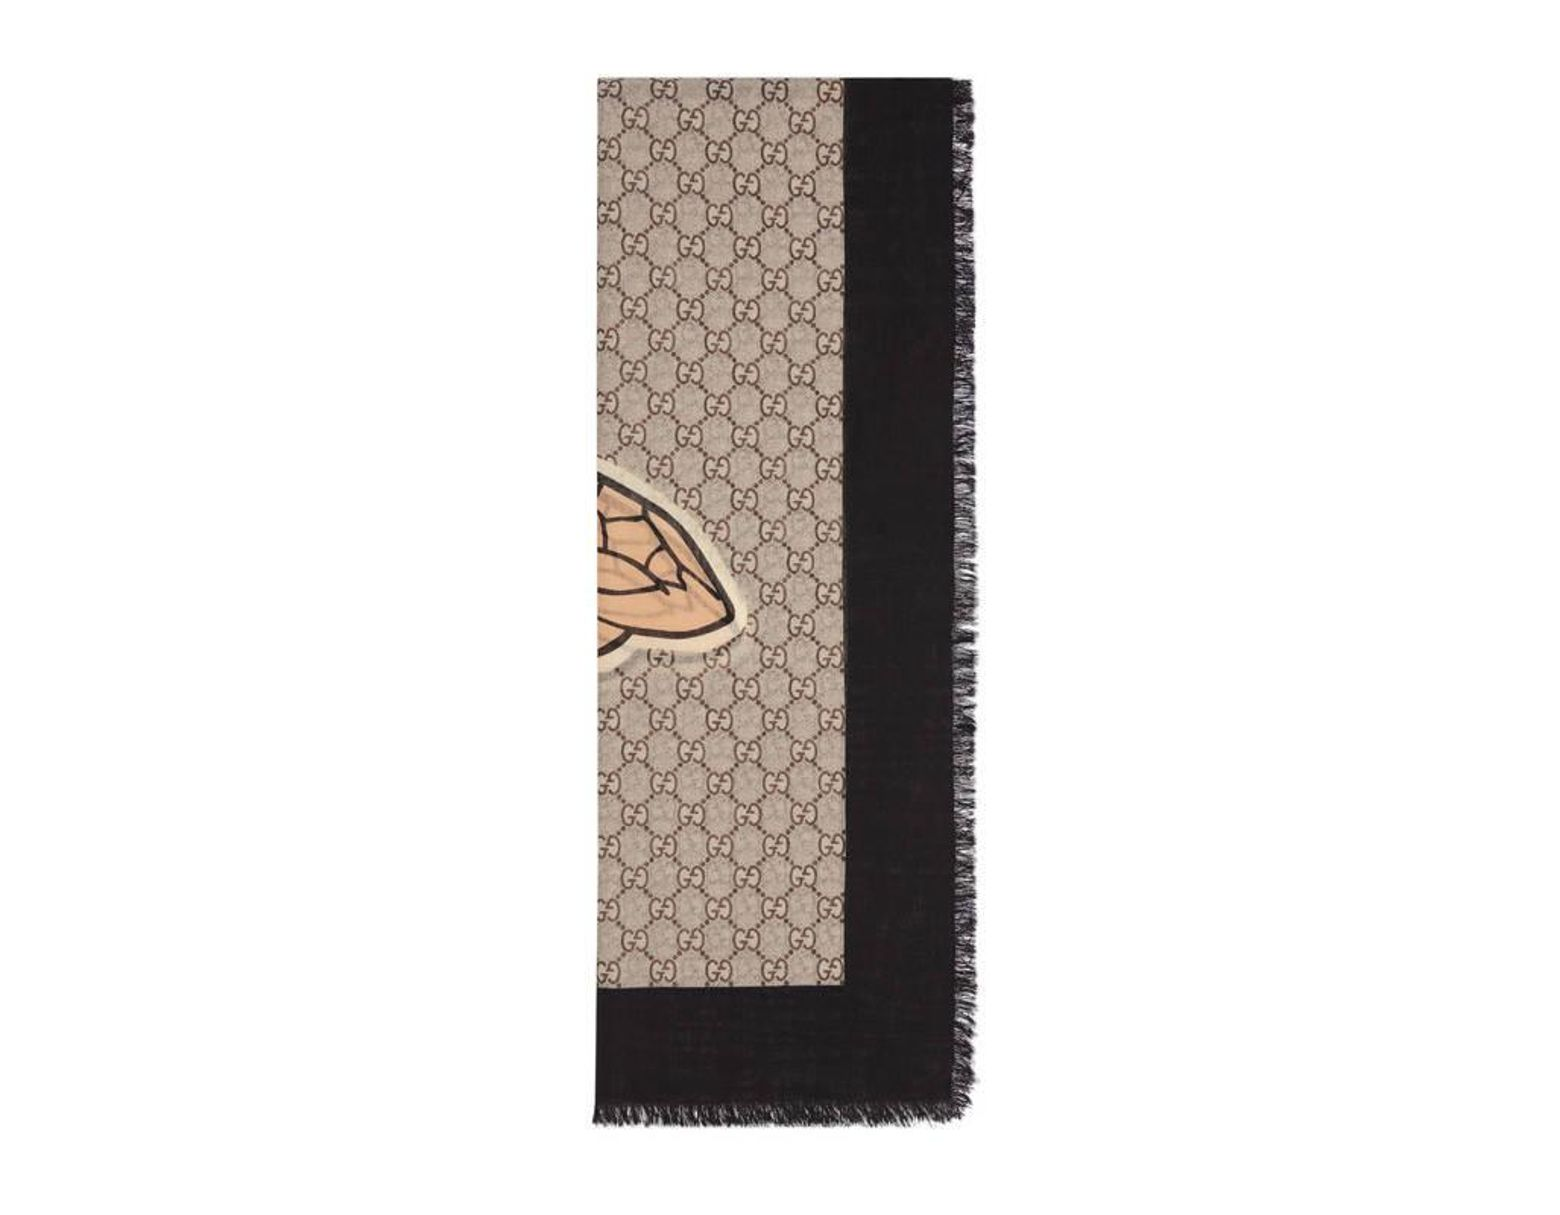 76a84e127 Gucci - Bee Web Print Wool Stole in Black for Men - Lyst